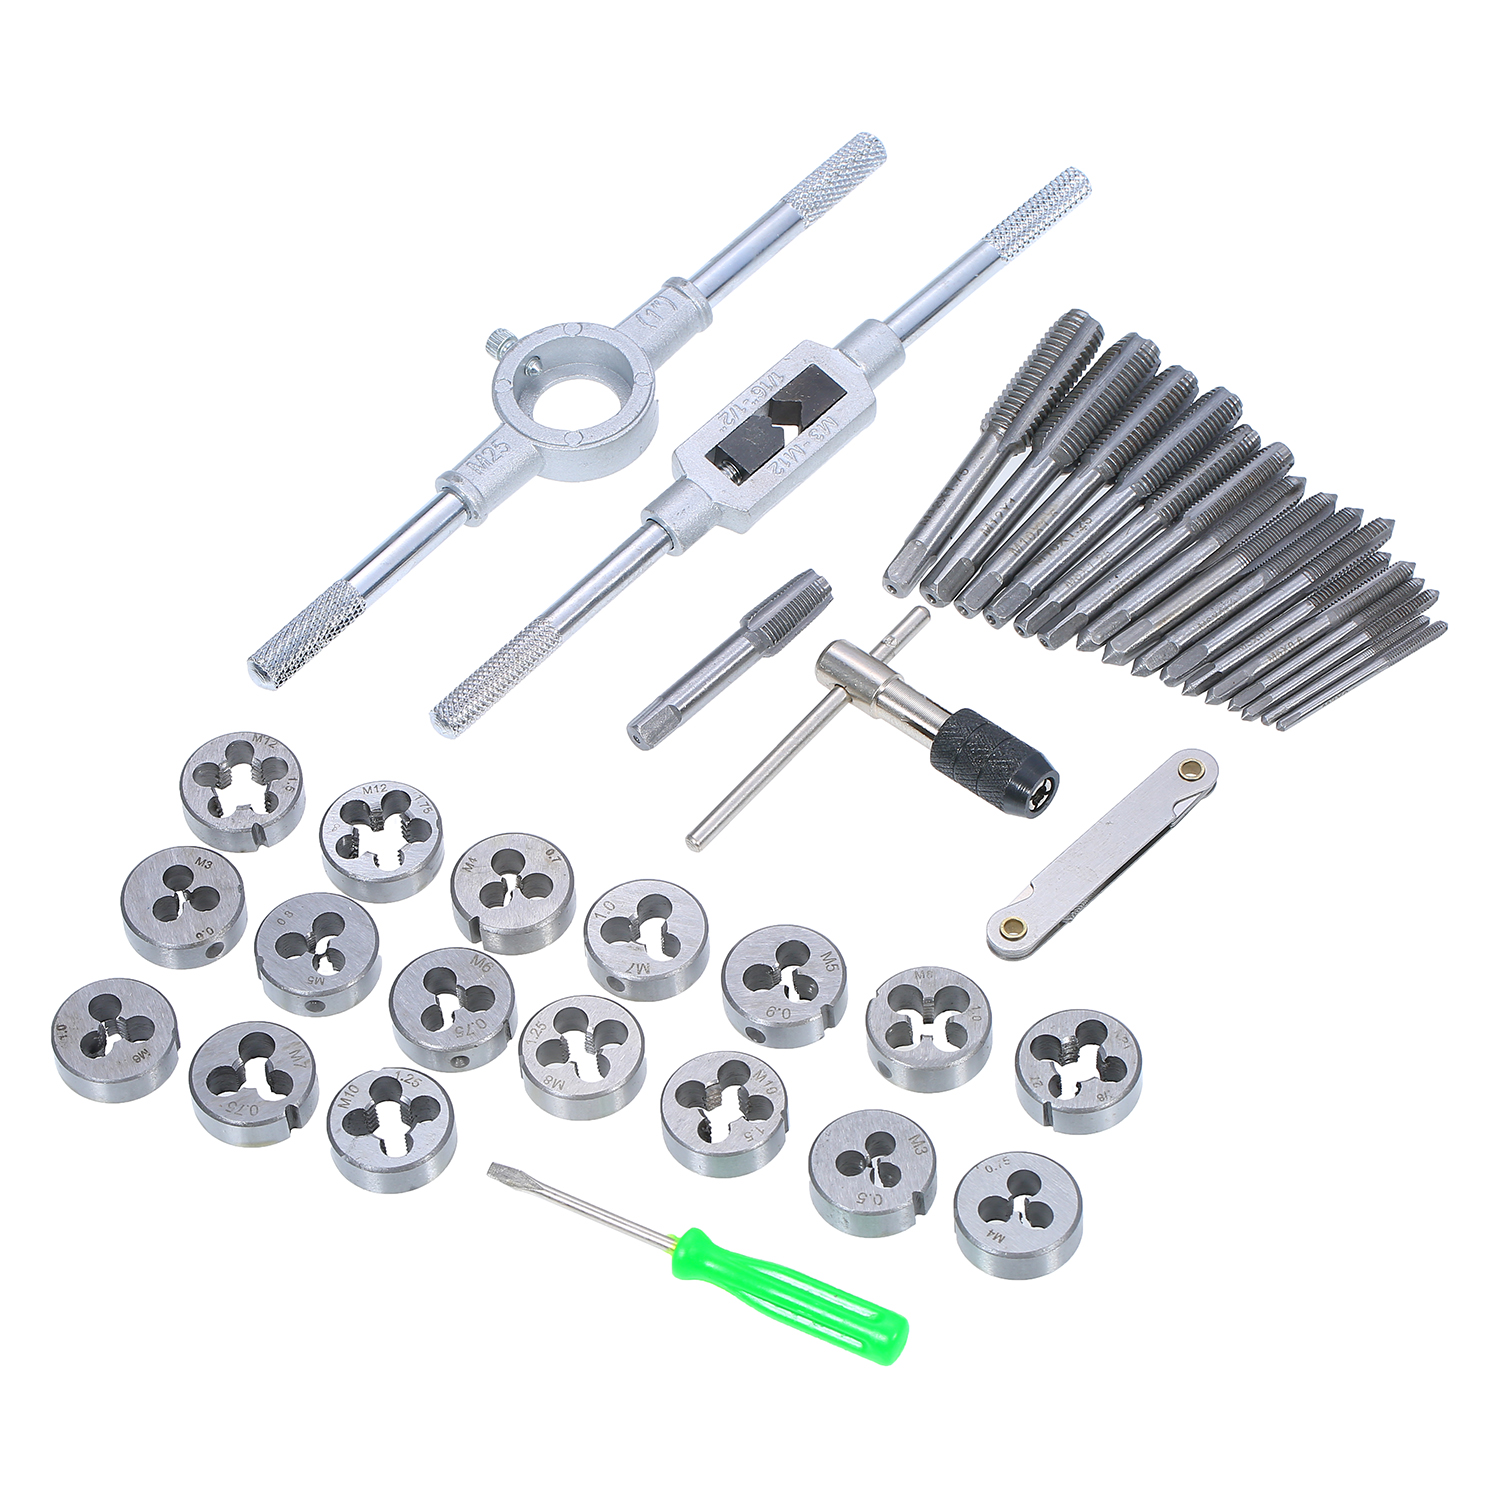 Inch Metalworking Hand Tool Screw Tap Threading Die /& Wrench Holder Kit w// Case